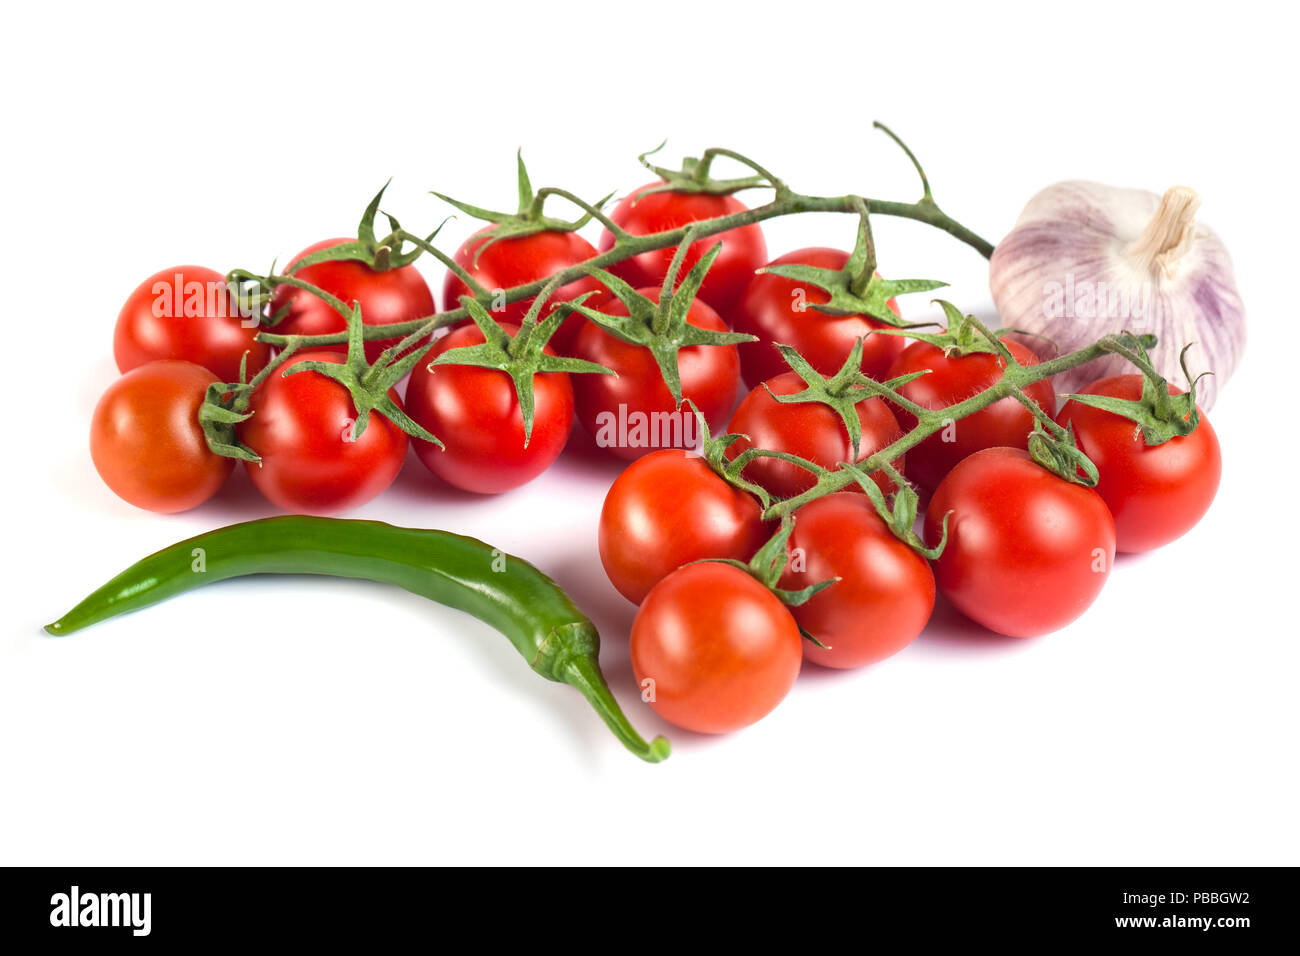 tomatoes, green peppers and other vegetables on a white background. - Stock Image